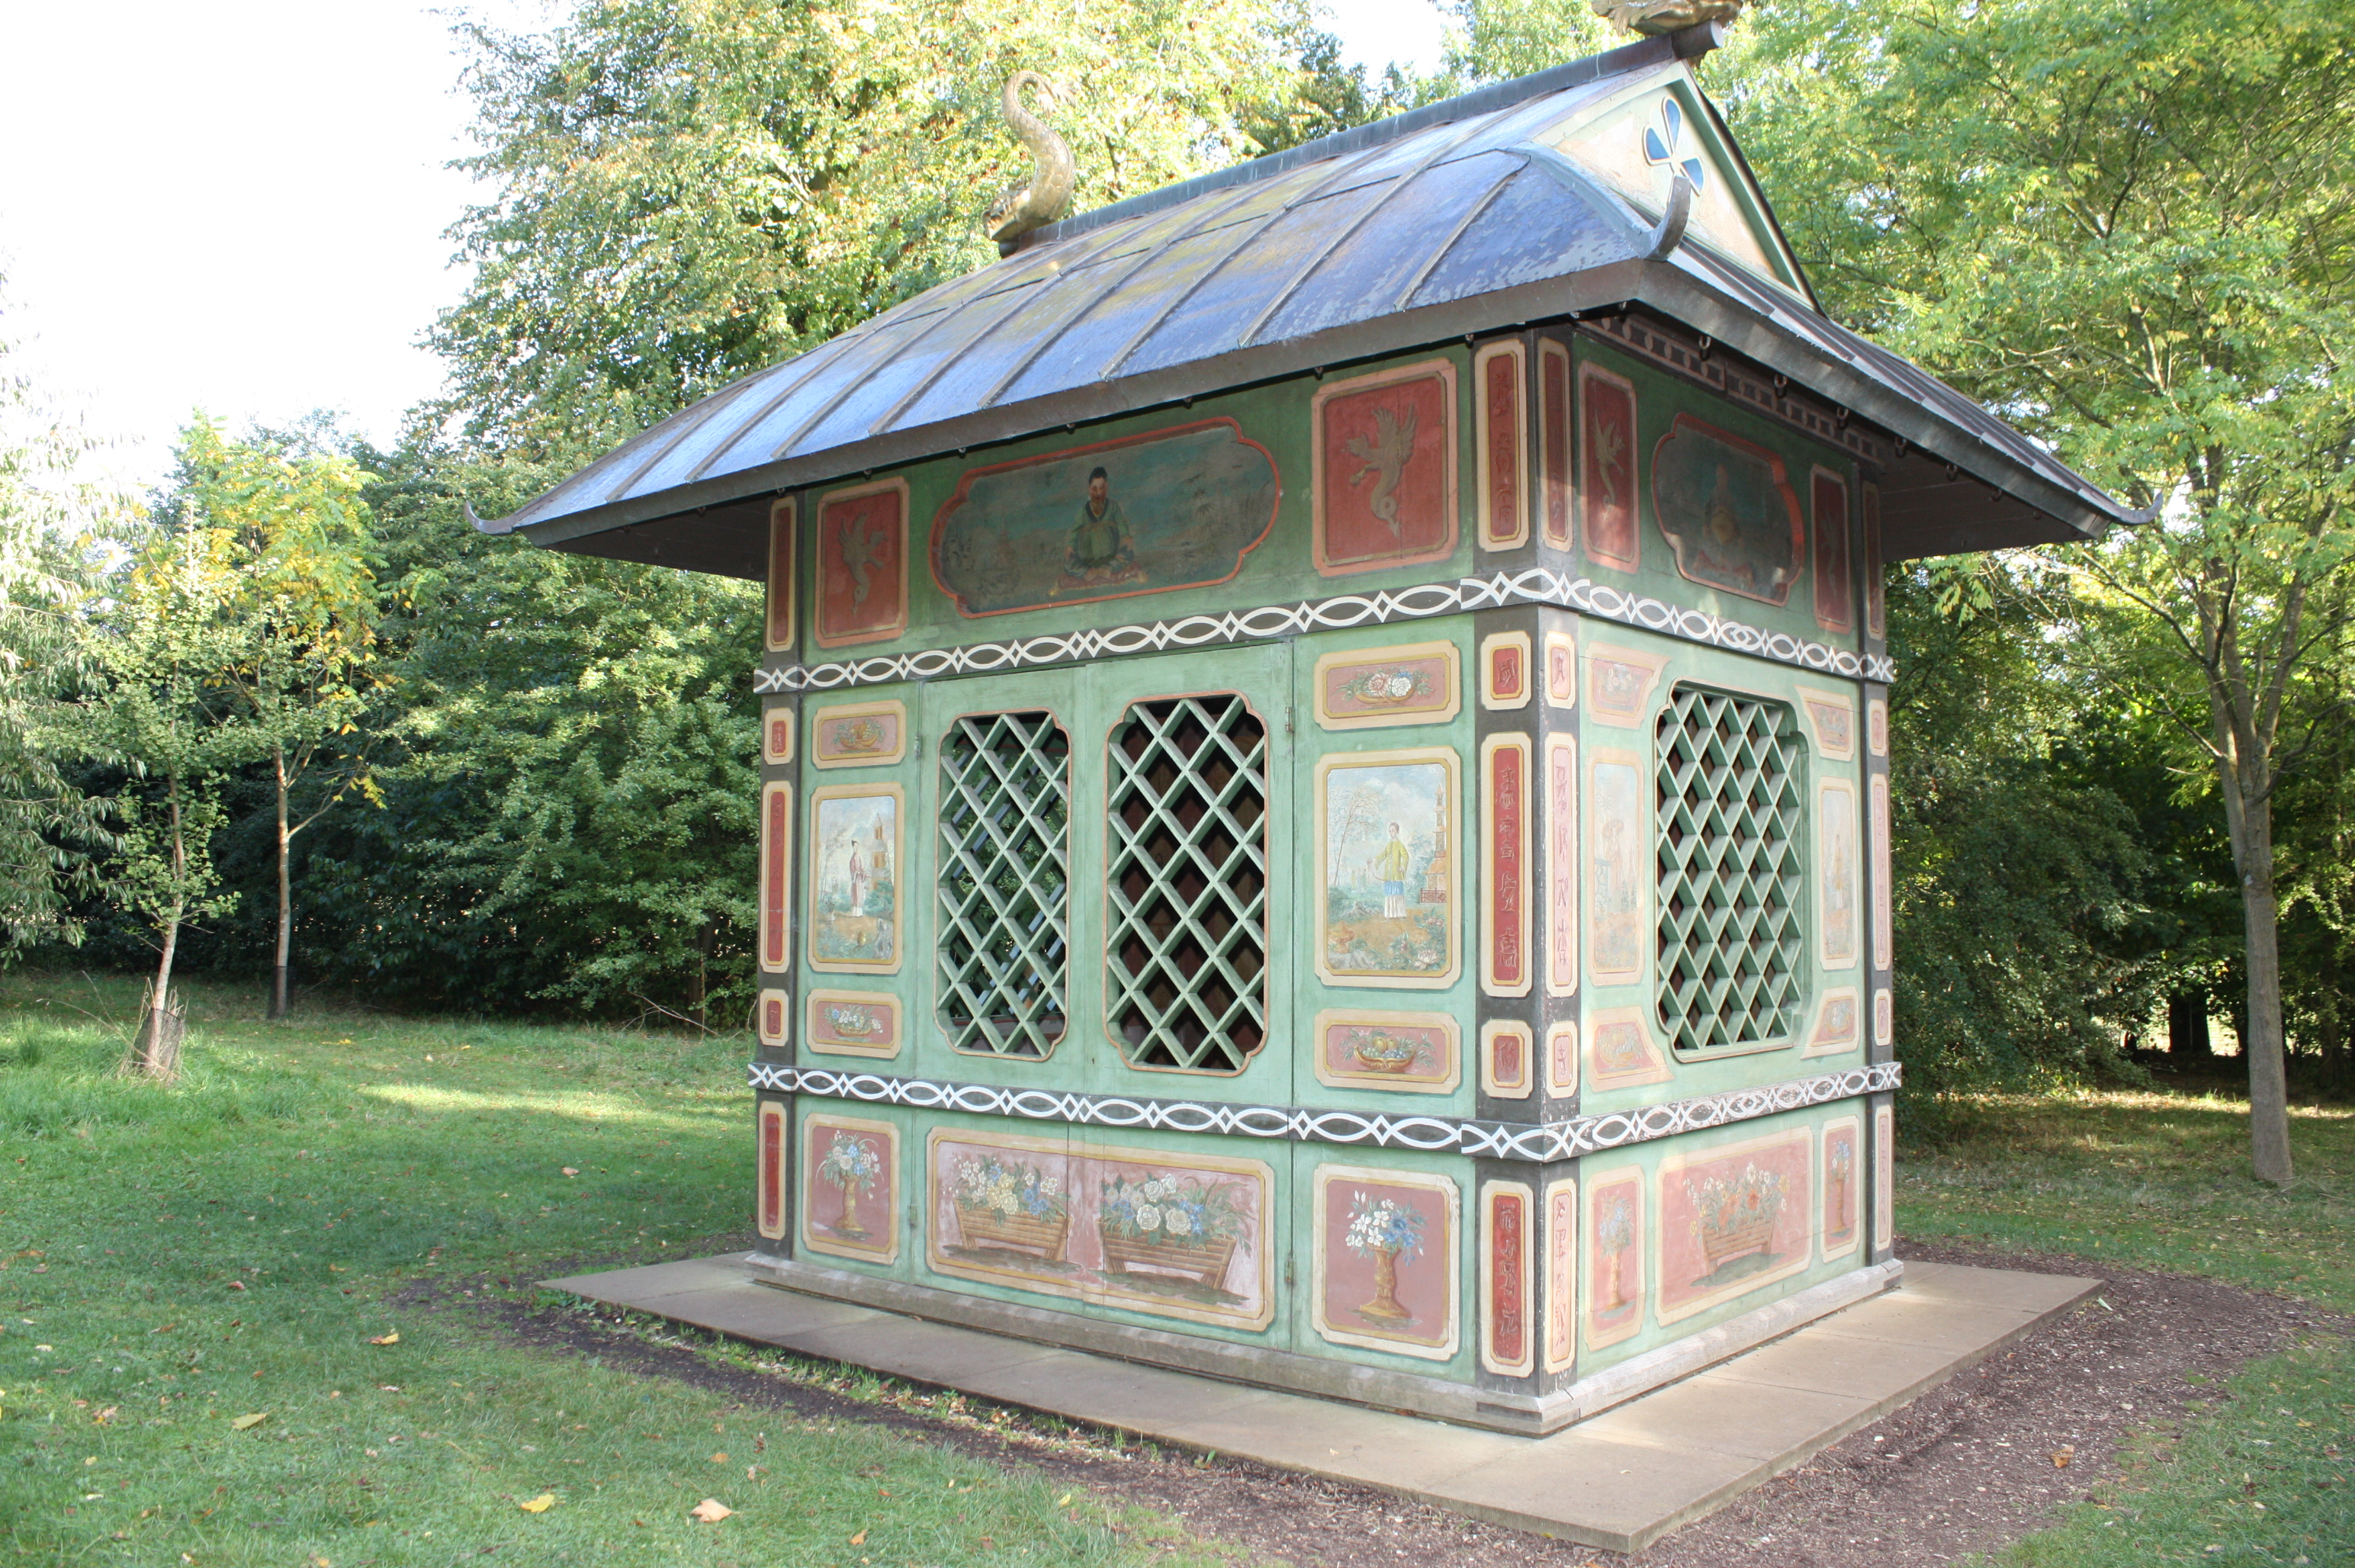 Captivating The Chinese House At Stowe. Courtesy Of National Trust / Perry Lithgow  Partnership